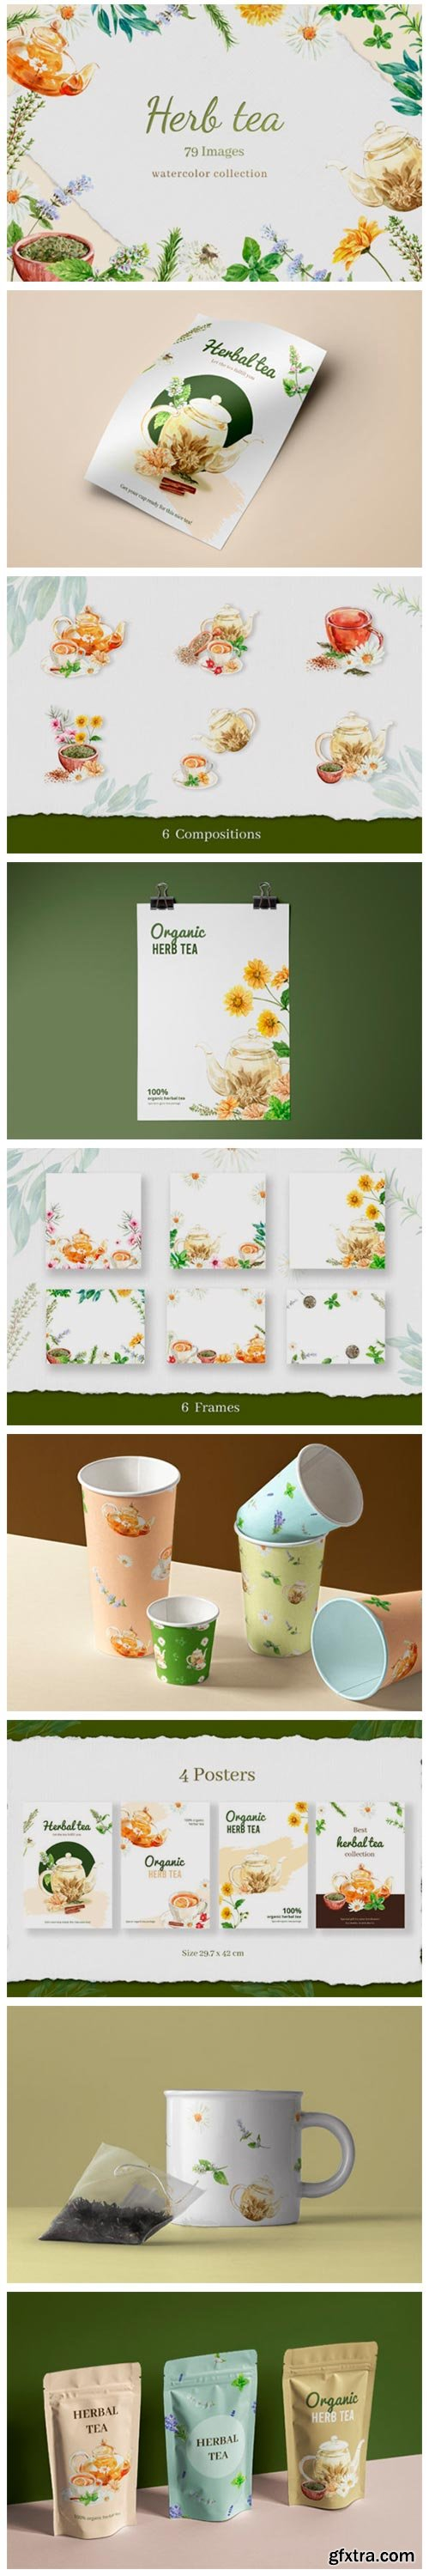 Tea Time with Herbal Tea for Health 5637177